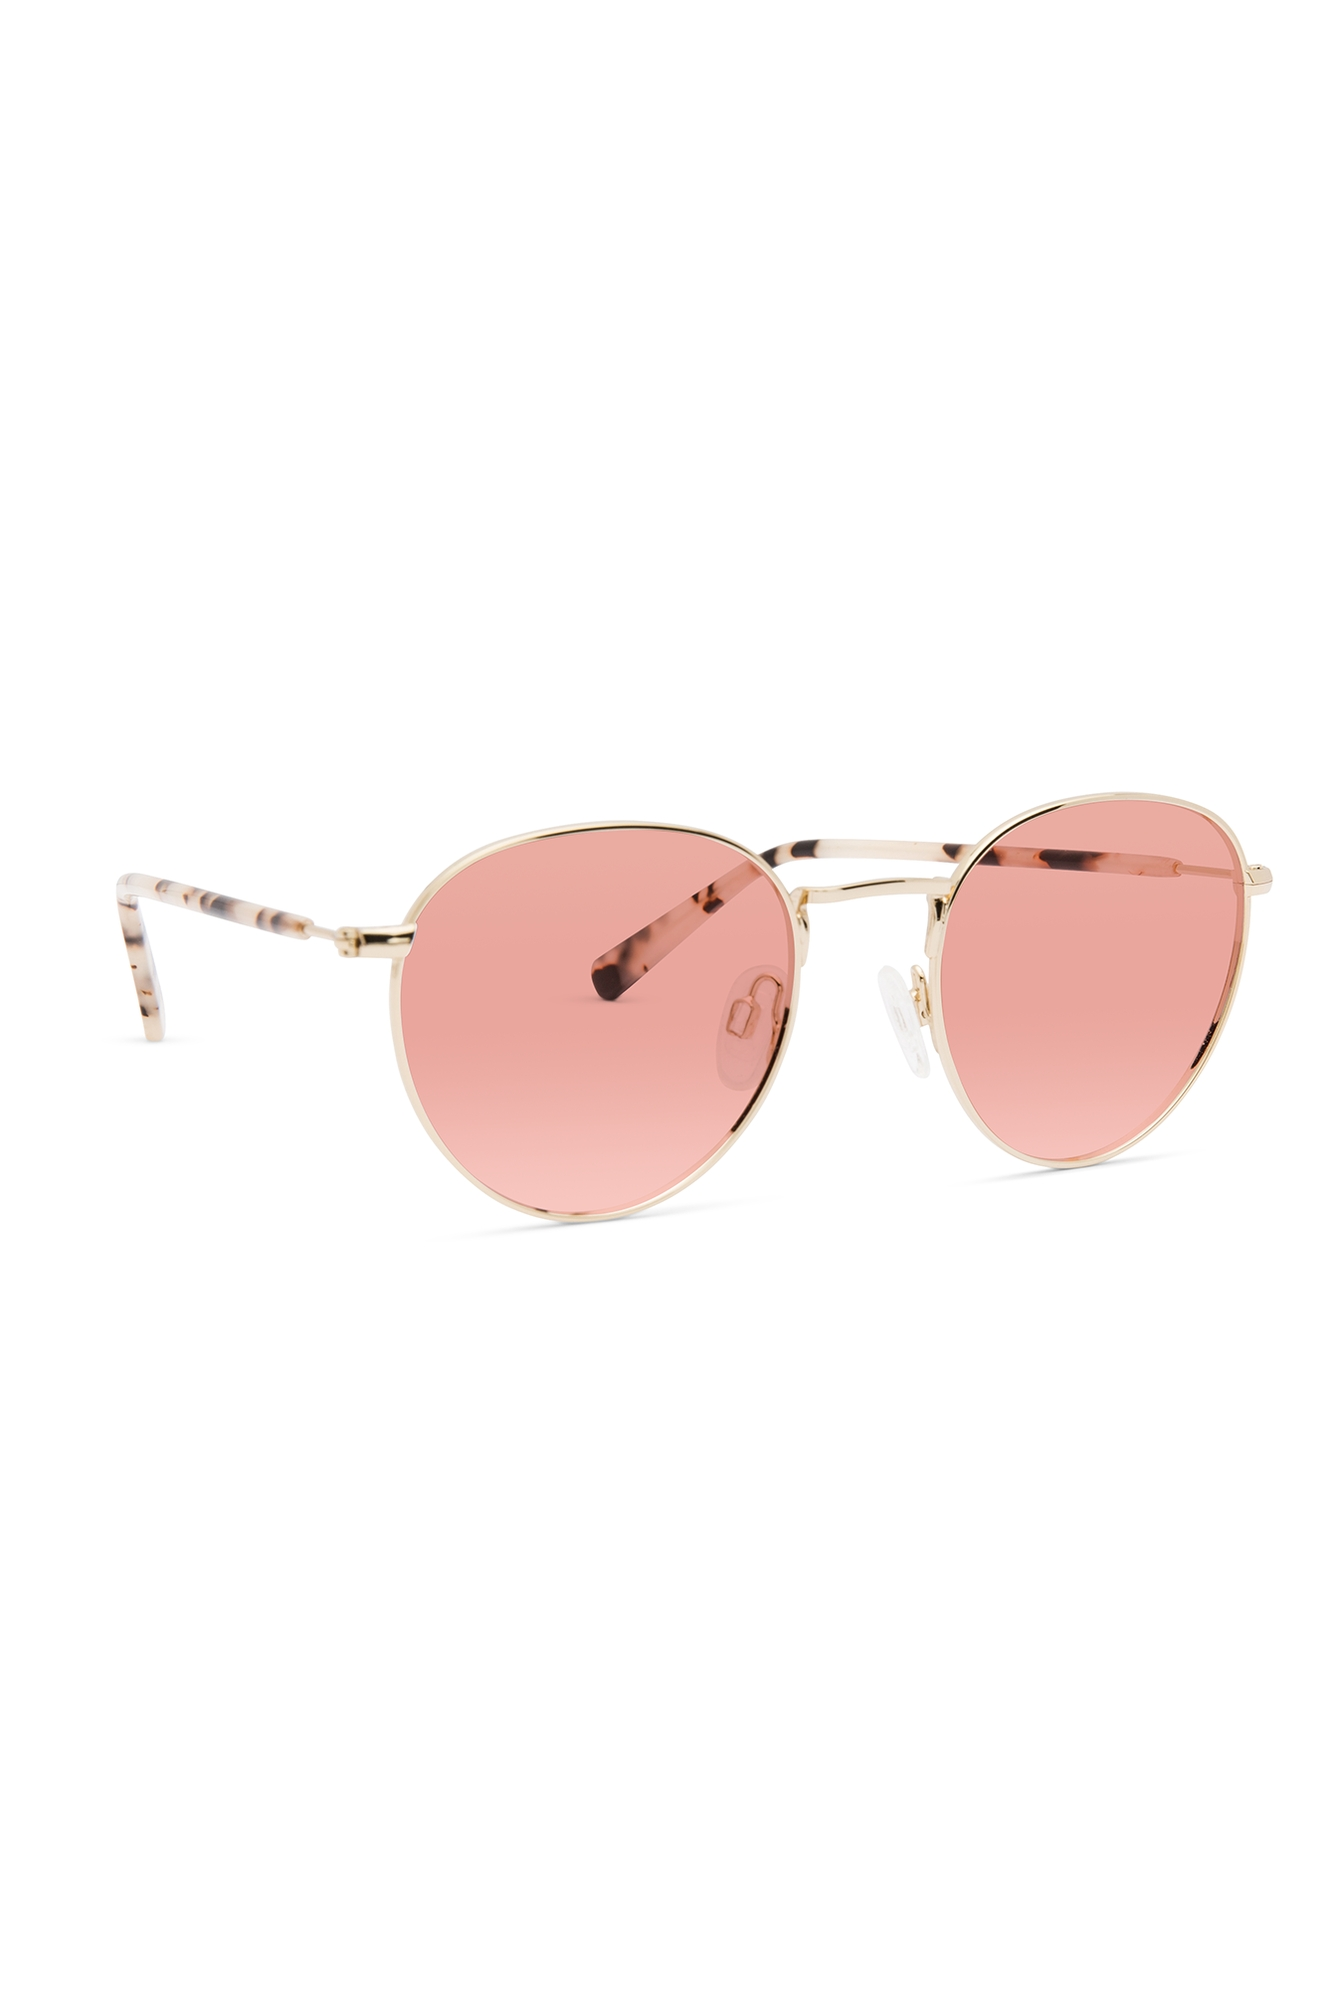 Amuse Society for D'Blanc Prologue Sunglasses